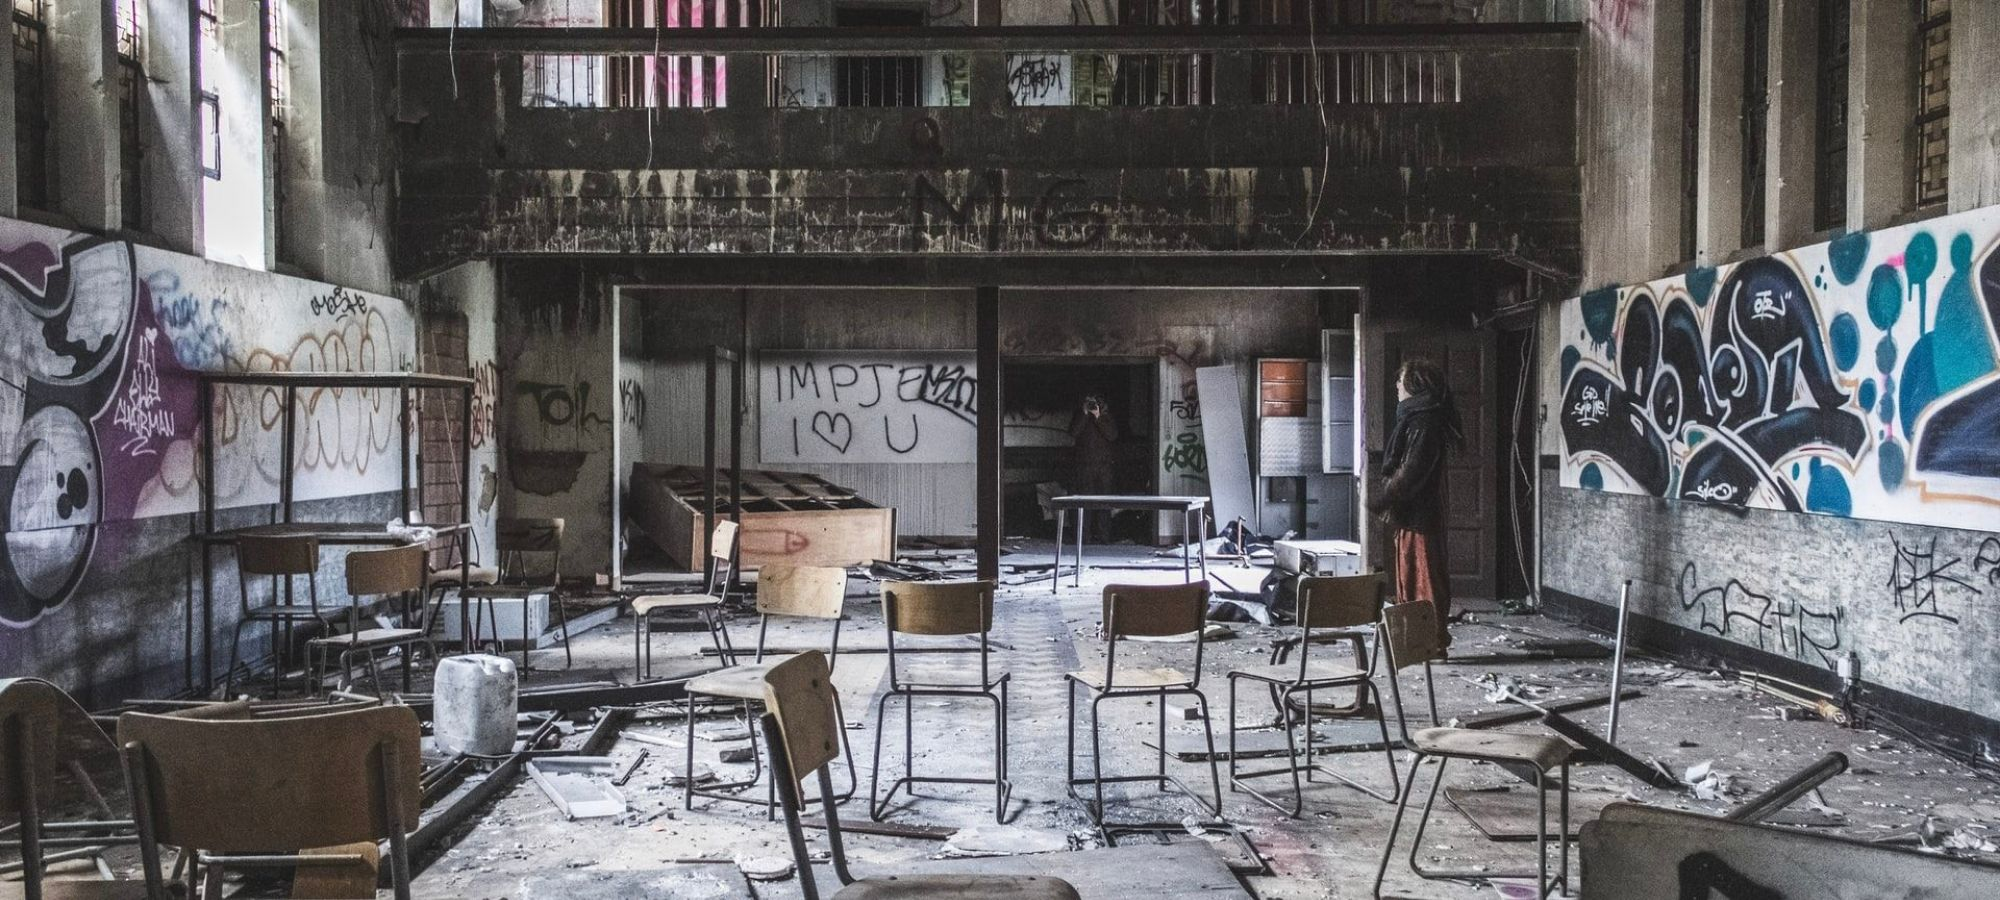 Inside an abandoned building in Doel, Belgium. Graffiti covers the walls and office chairs are spread about chaotically